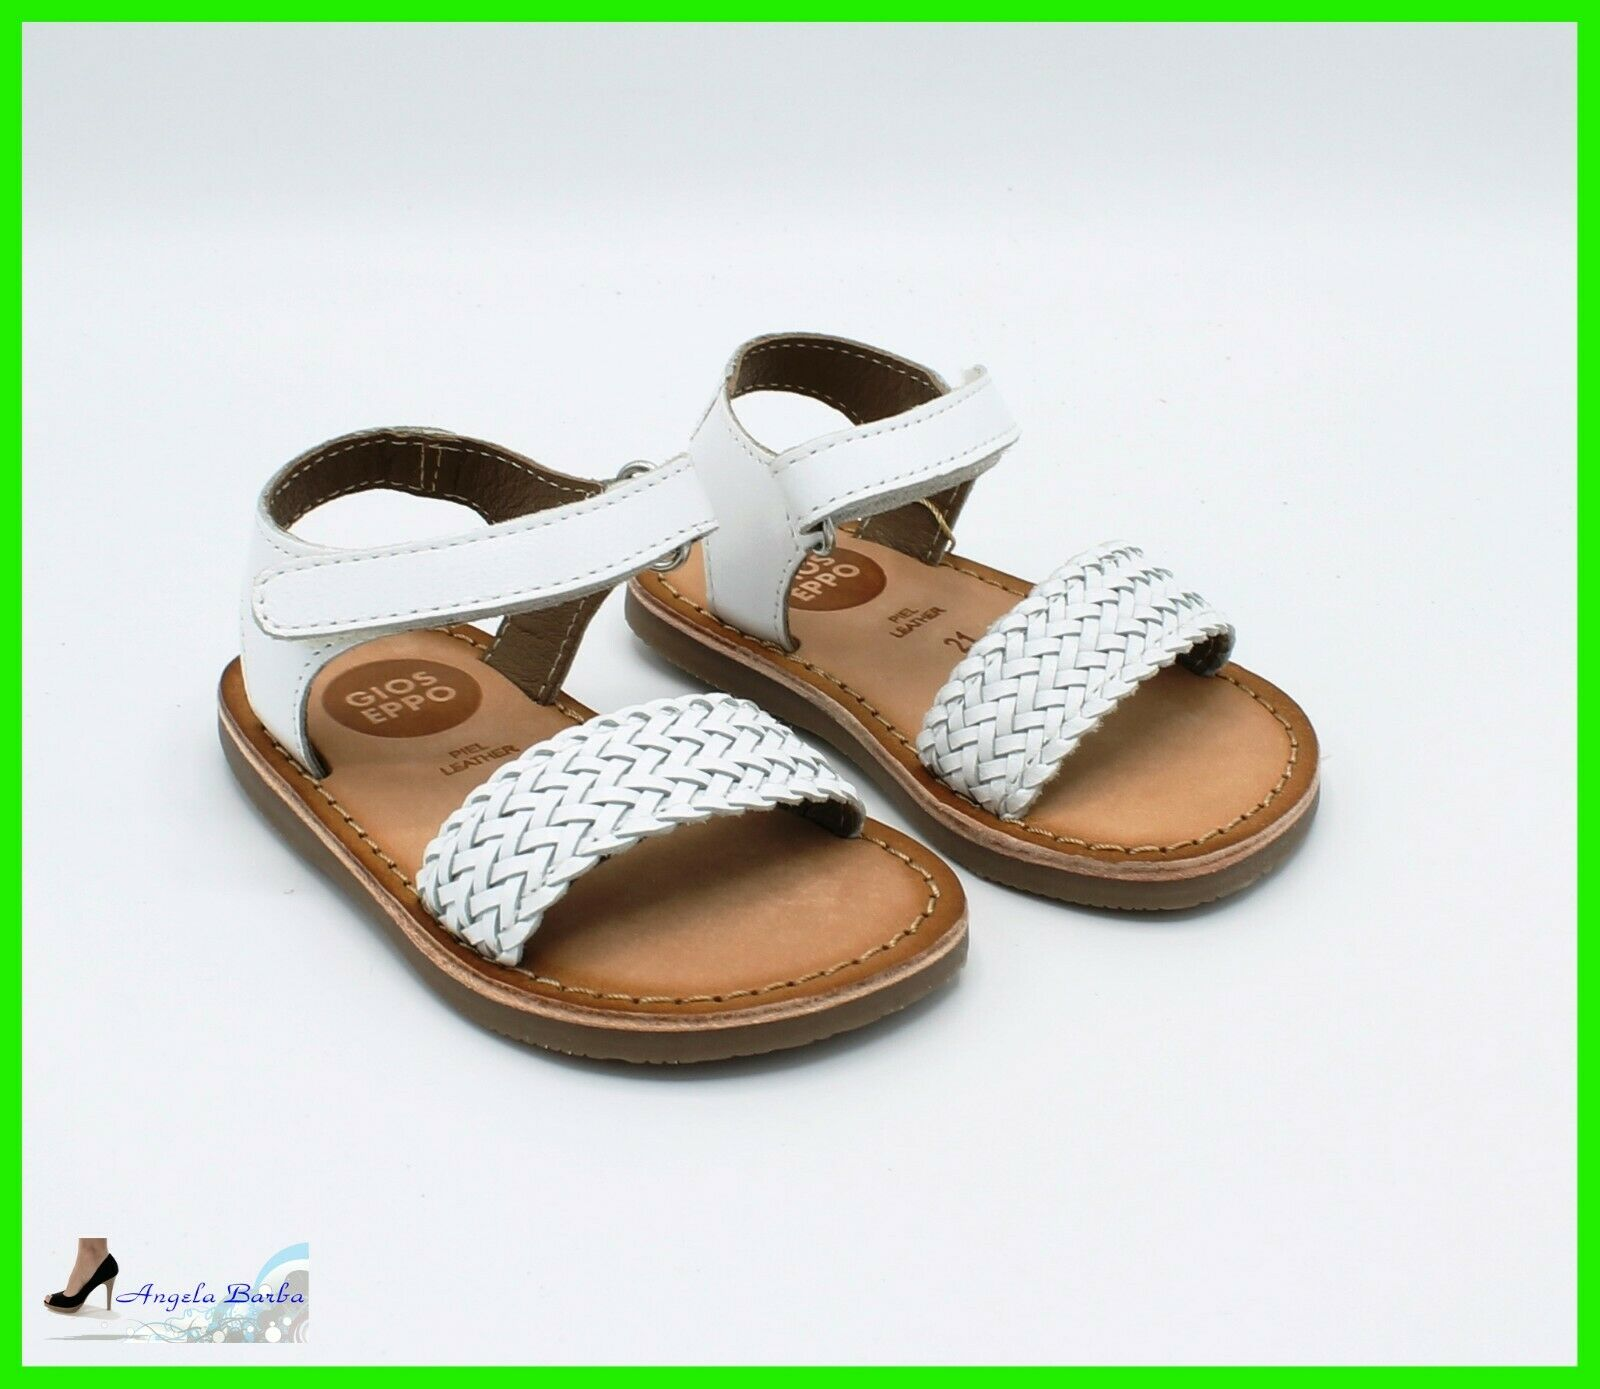 Gioseppo Sandals Baby Leather Leather Sandal Shoes for Baby Girl Summer 21 23